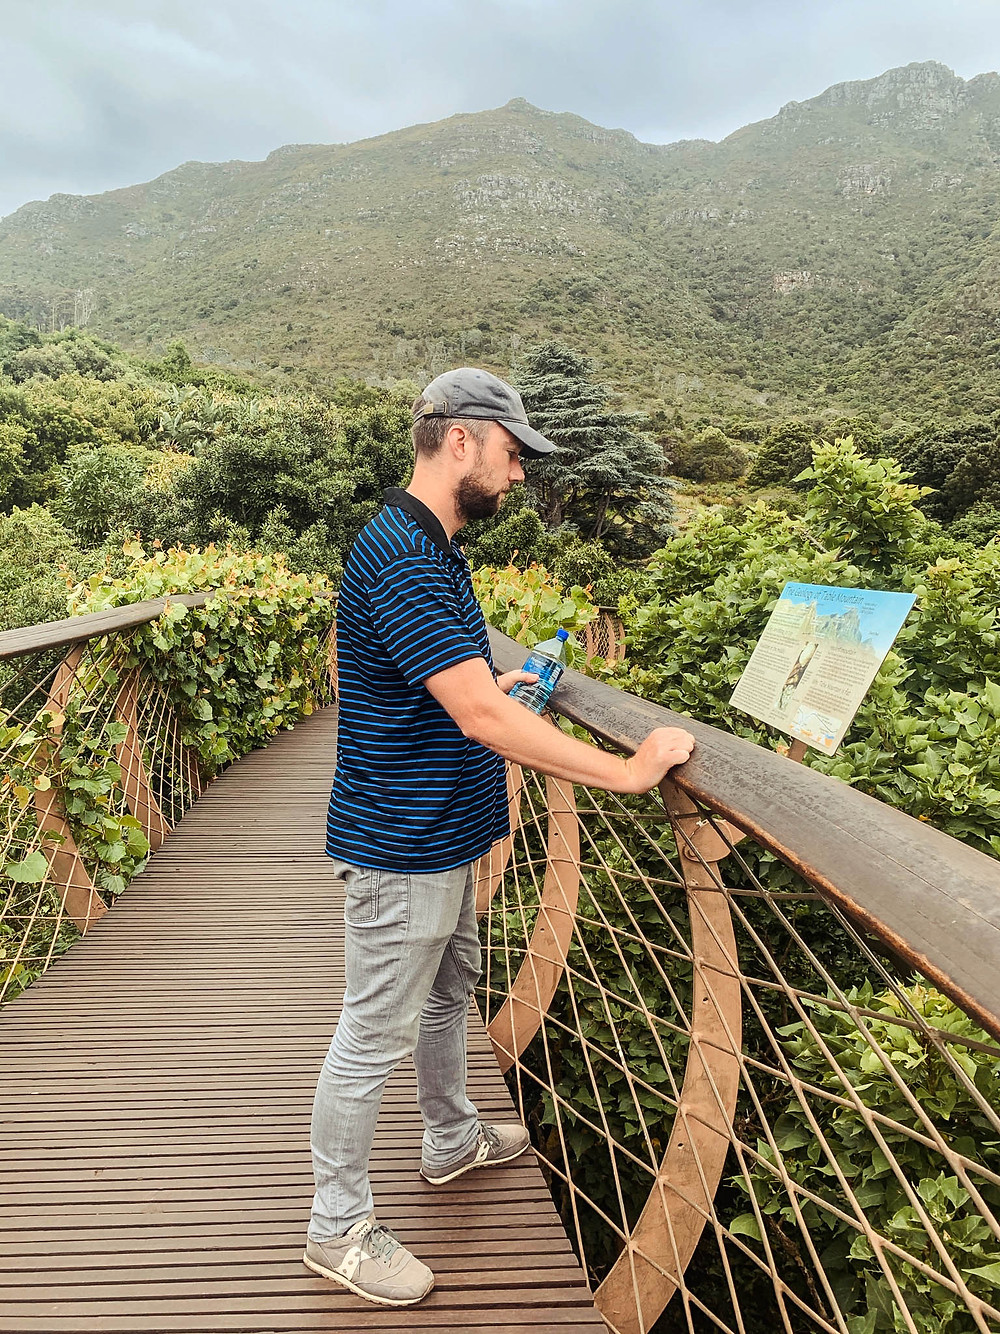 The incredible Kirstenbosch Gardens - in the shadow of Table Mountain